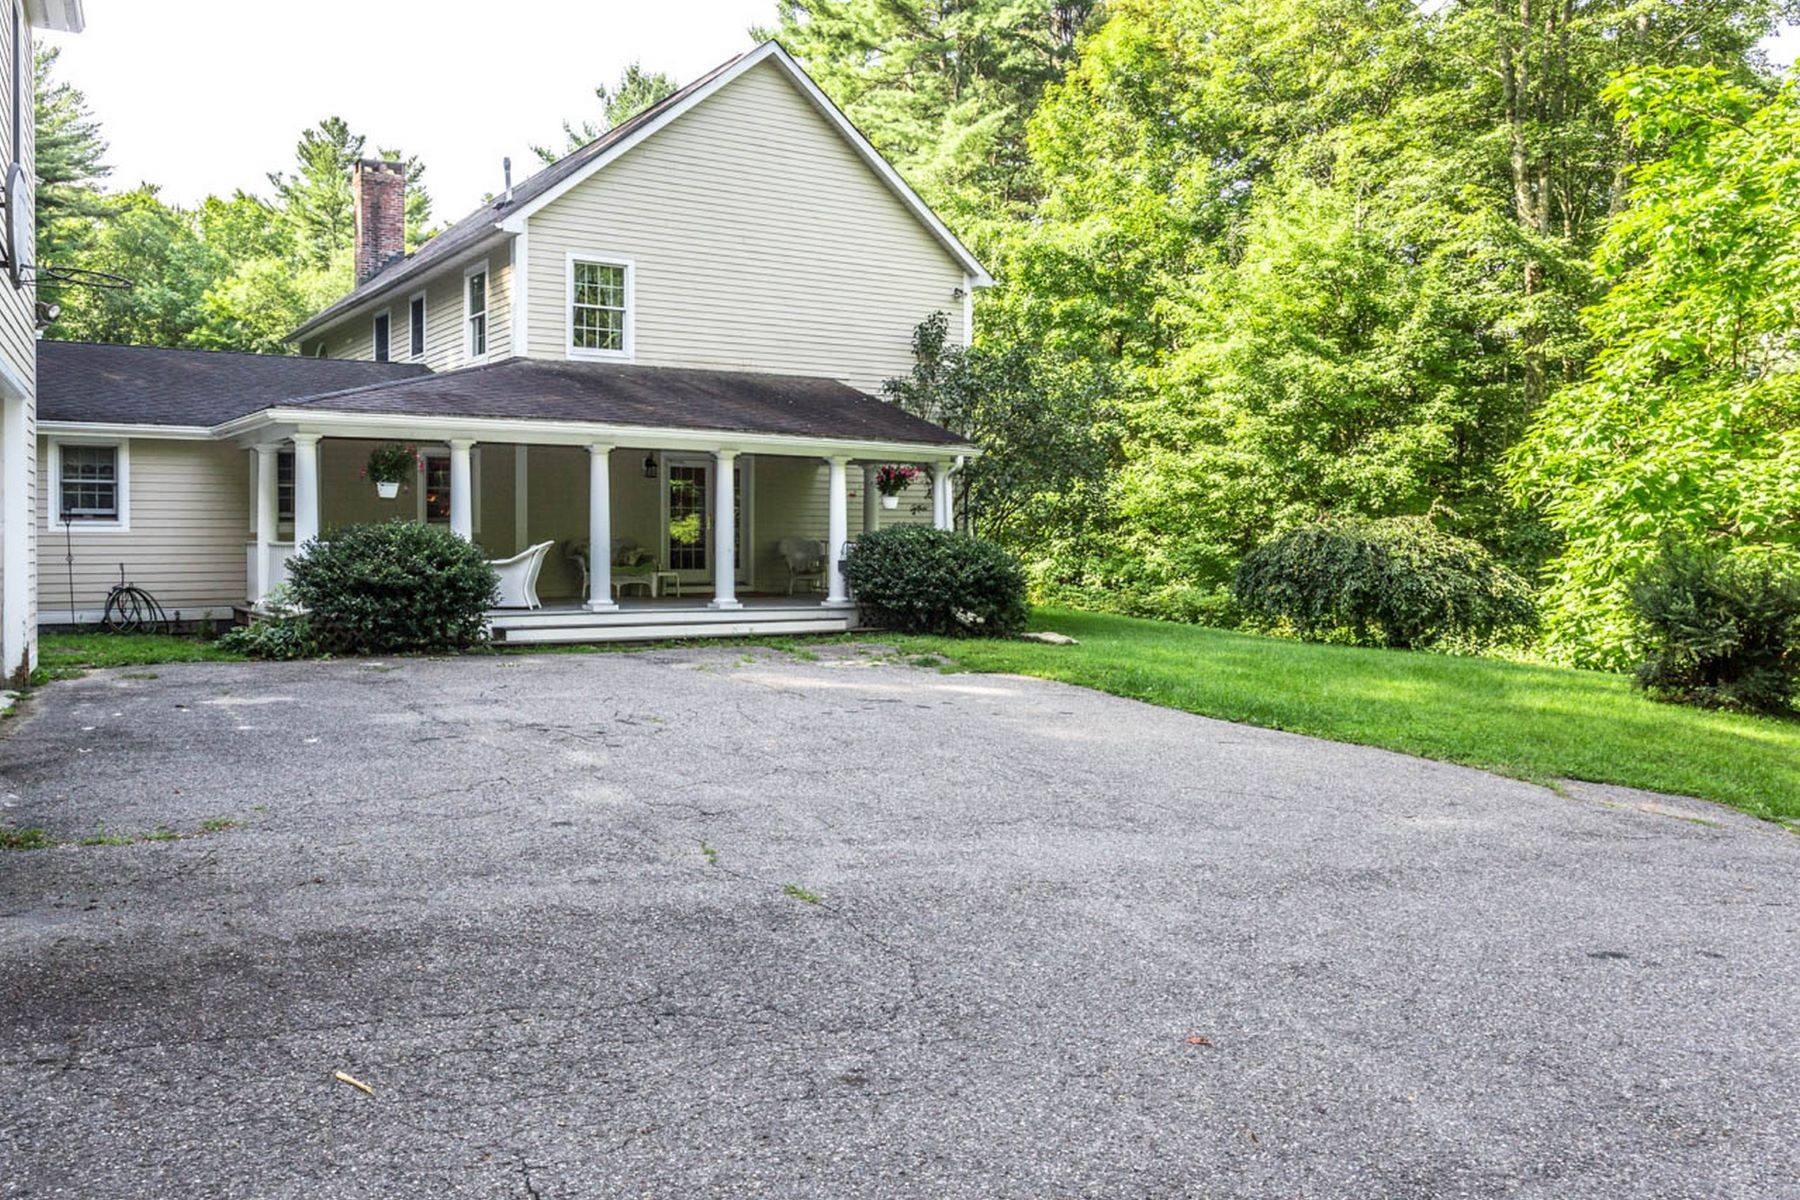 Single Family Homes for Active at Outstanding West Cornwall Colonial 78 Grange Hall Road Cornwall, Connecticut 06796 United States